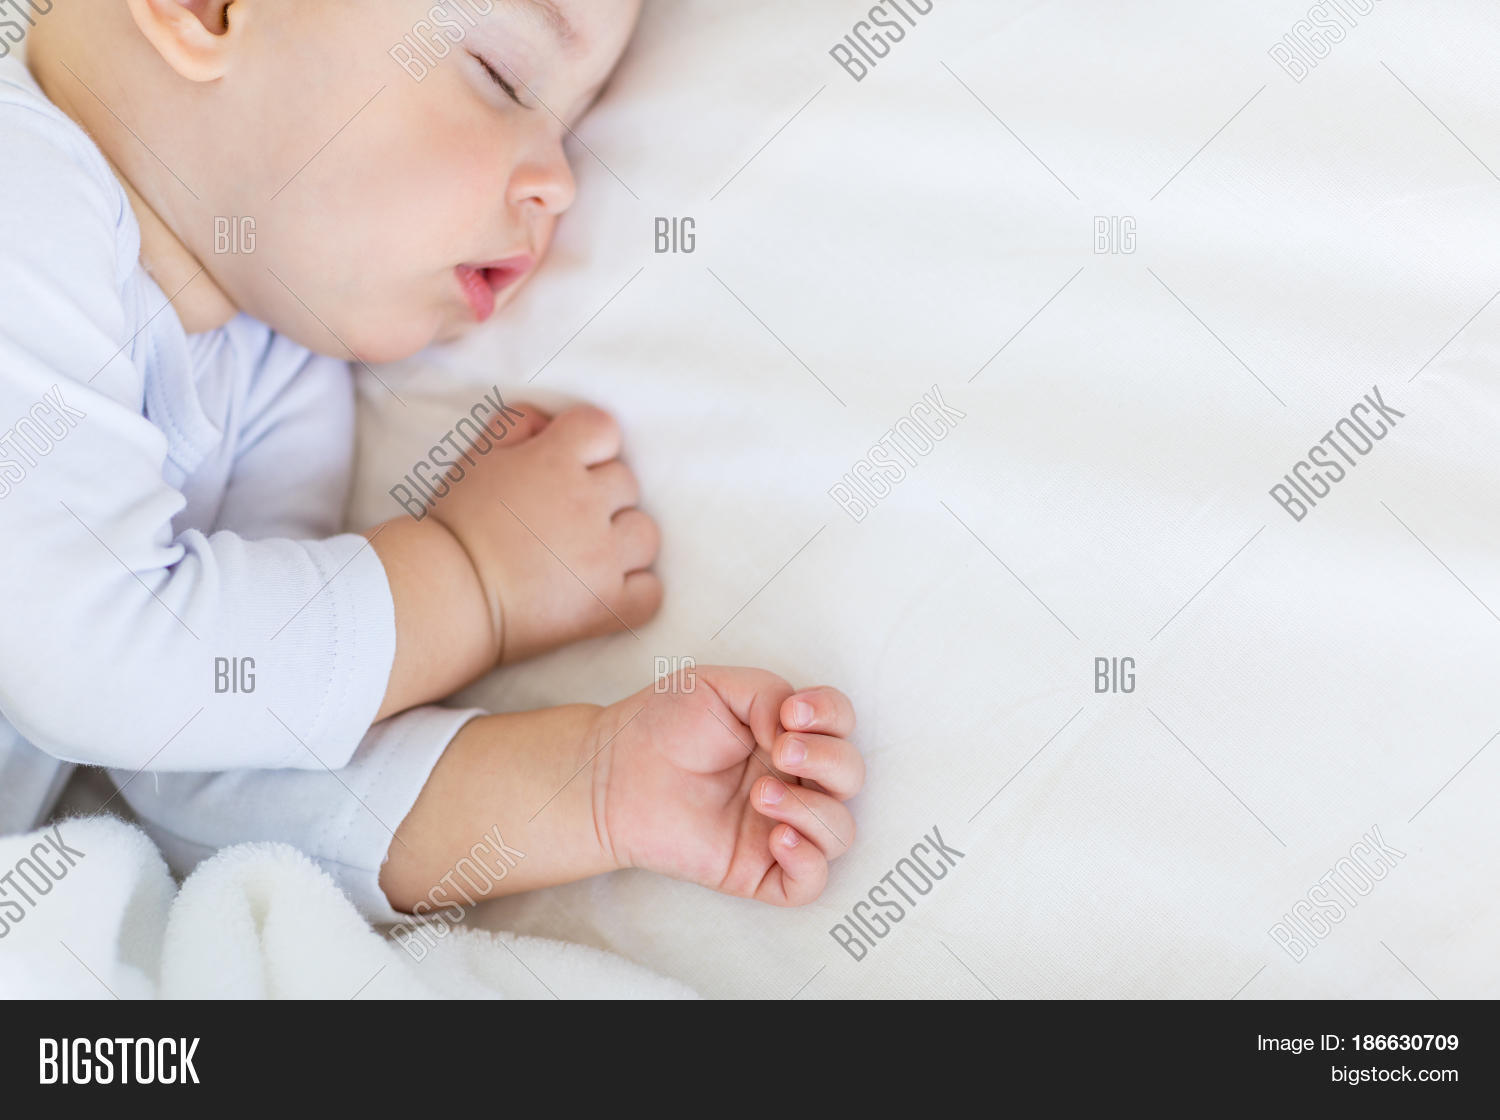 bd57b1933b7e new style cdd84 18586 close up portrait of adorable baby boy ...